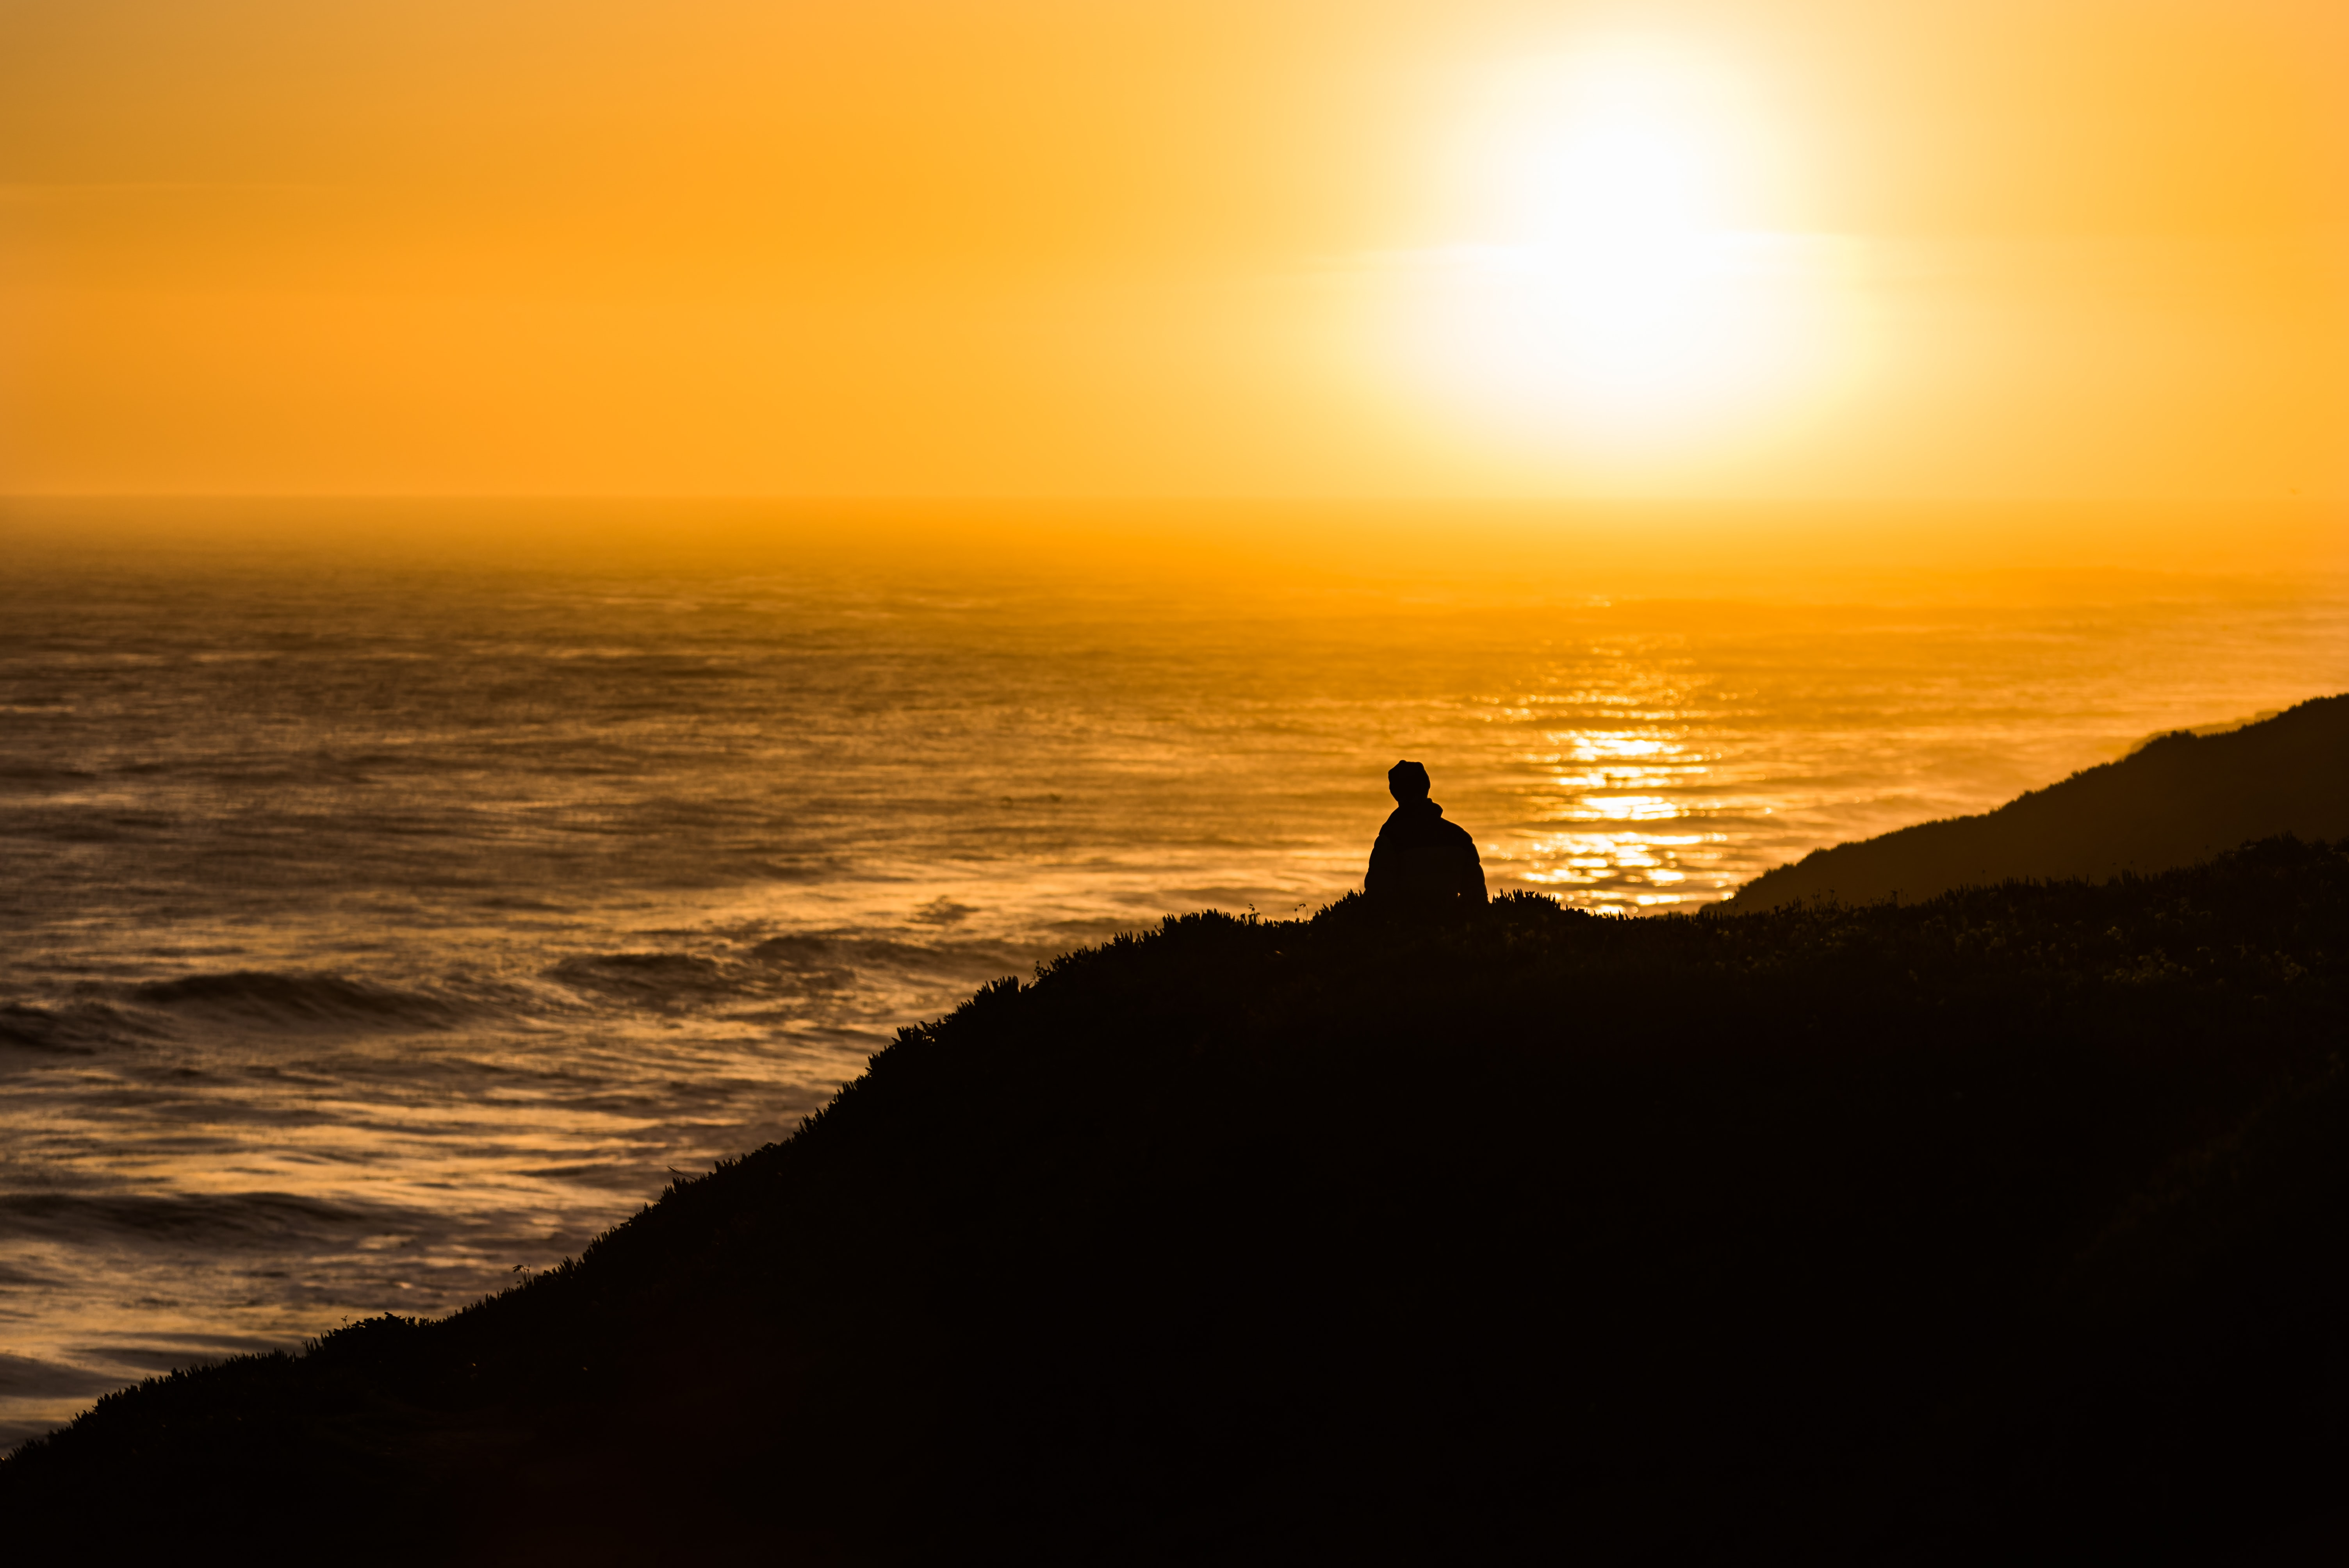 A lonely person sits atop a hill above the ocean of Santa Cruz, watching the orange sunset